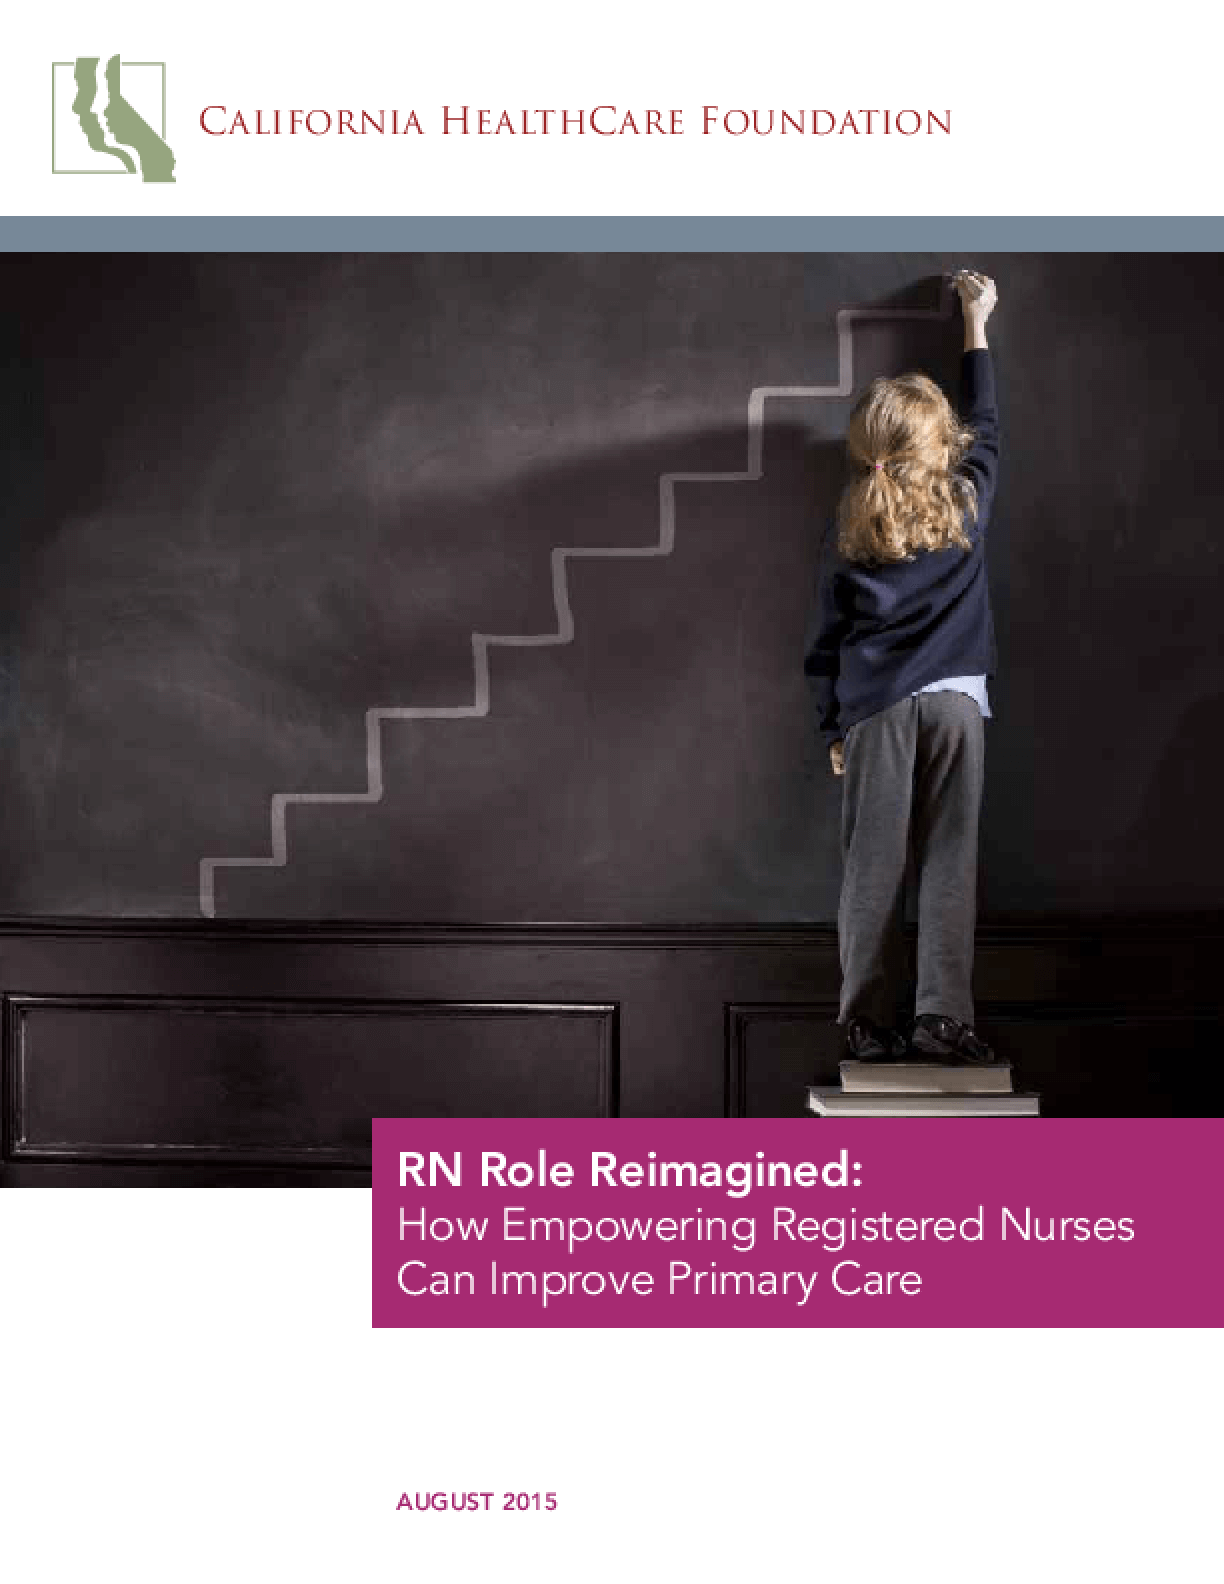 RN Role Reimagined: How Empowering Registered Nurses Can Improve Primary Care